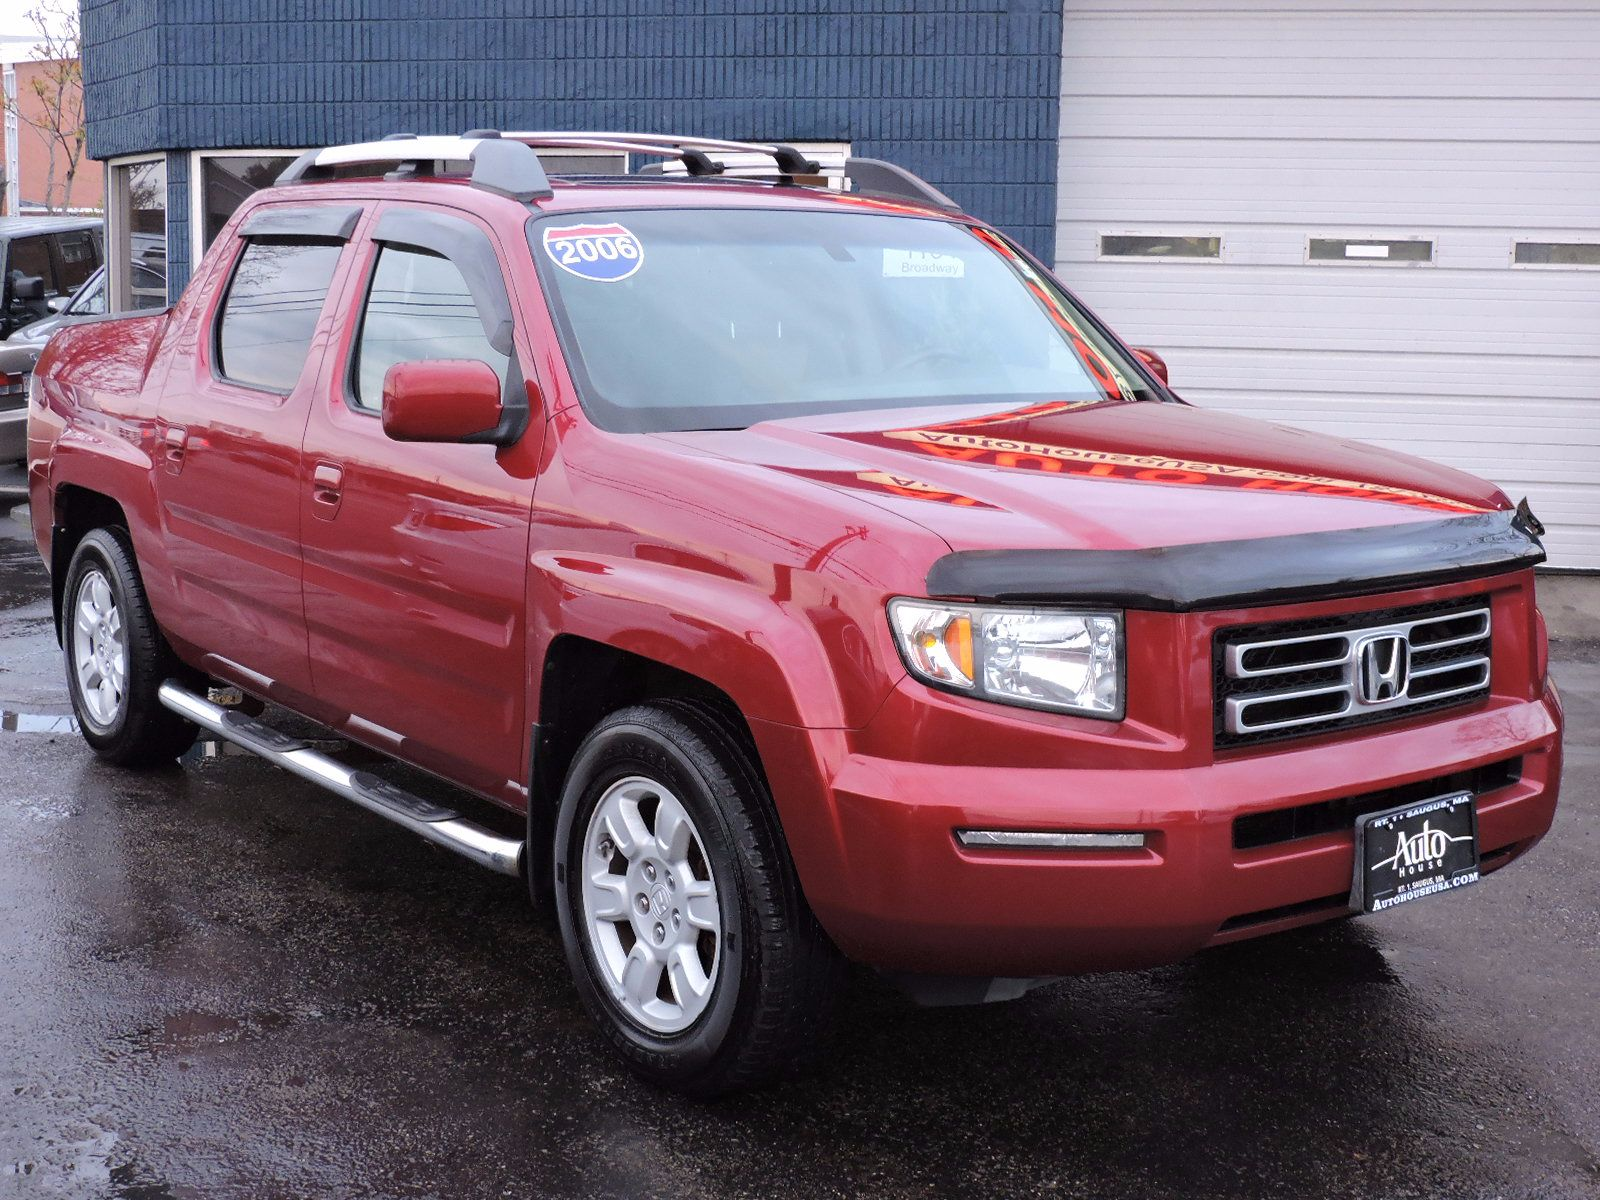 used 2006 honda ridgeline rtl with moonroof at auto house. Black Bedroom Furniture Sets. Home Design Ideas